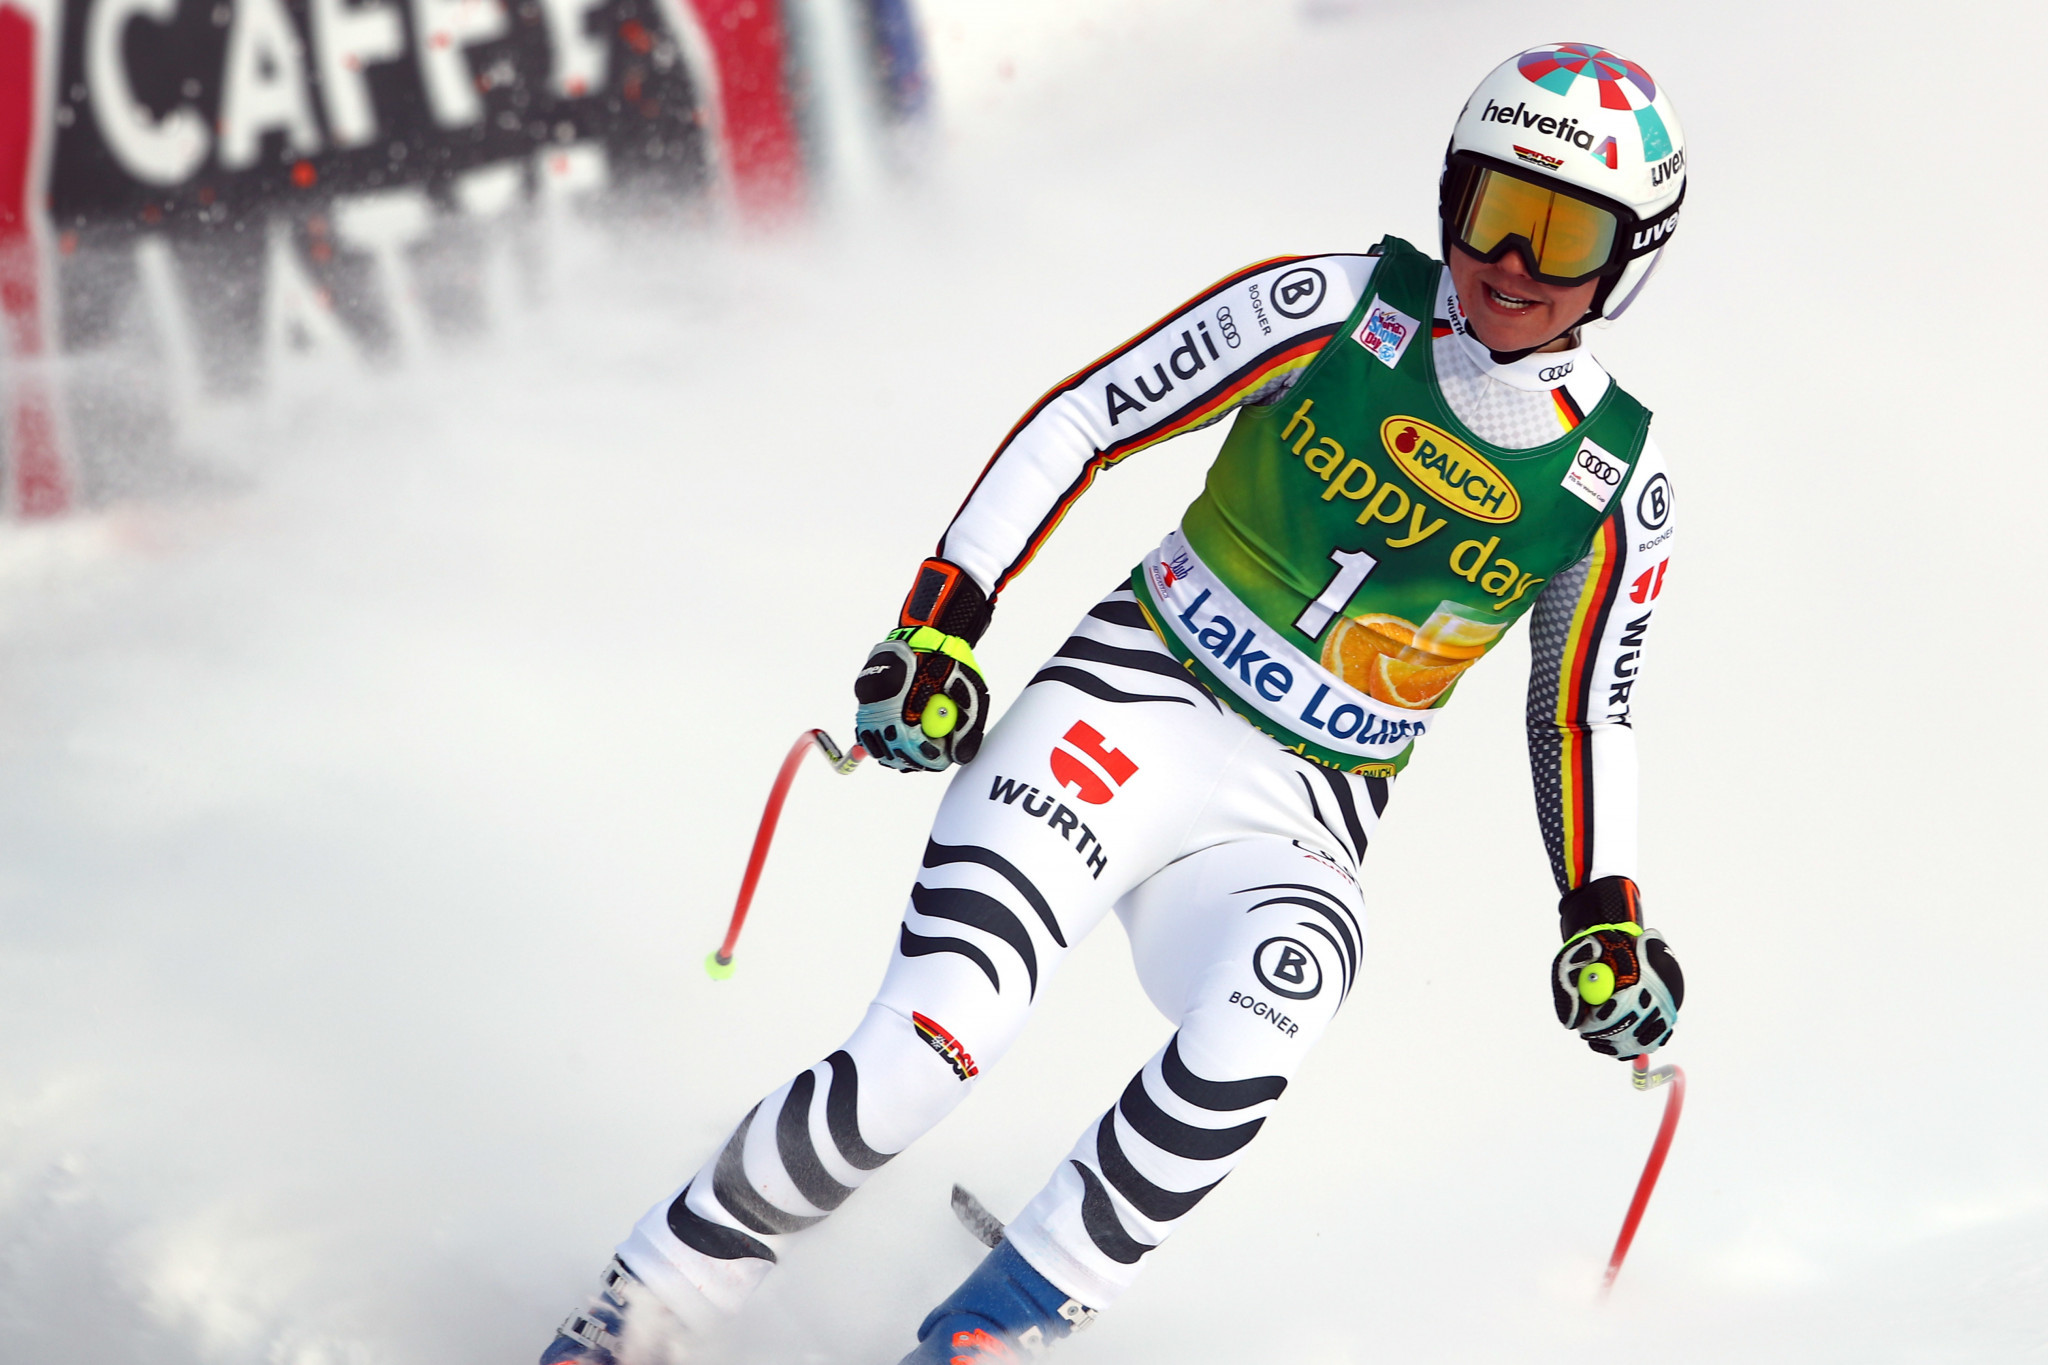 The 2019 Lake Louise World Cup will take place between November 30 and December 8 ©Getty Images